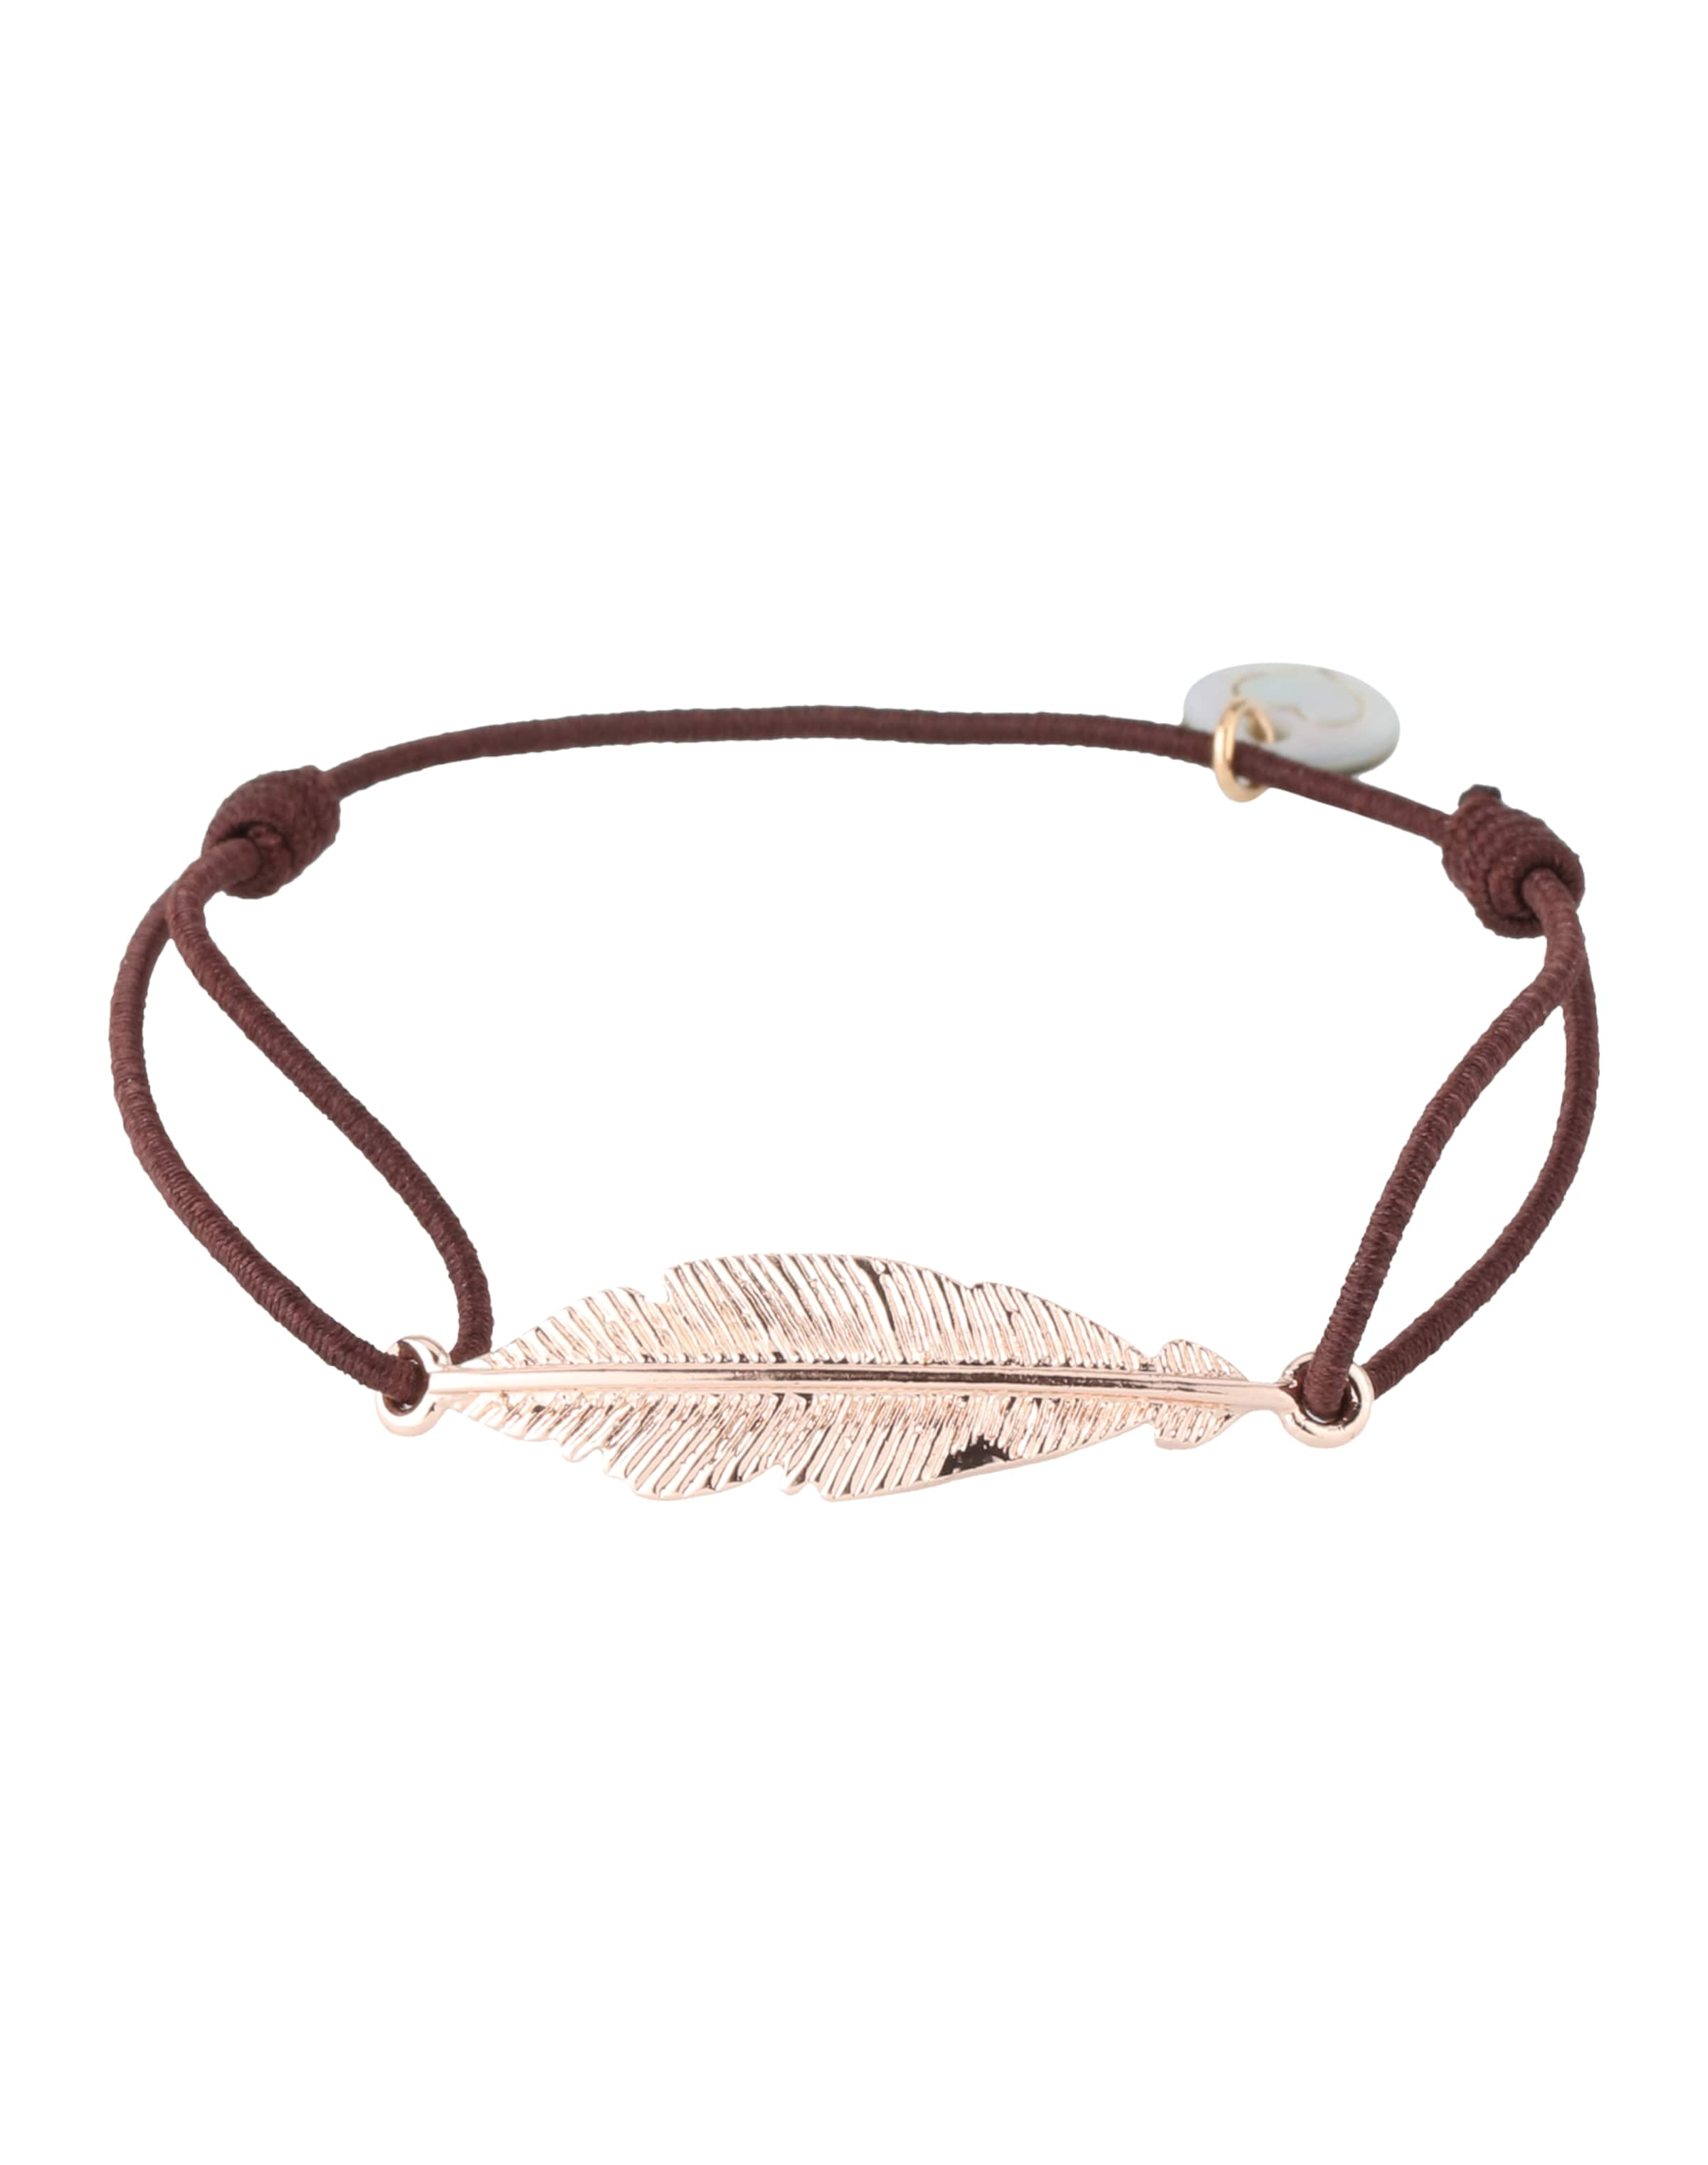 lua accessories Armband 'Small feather' Amazonas Wg5Au